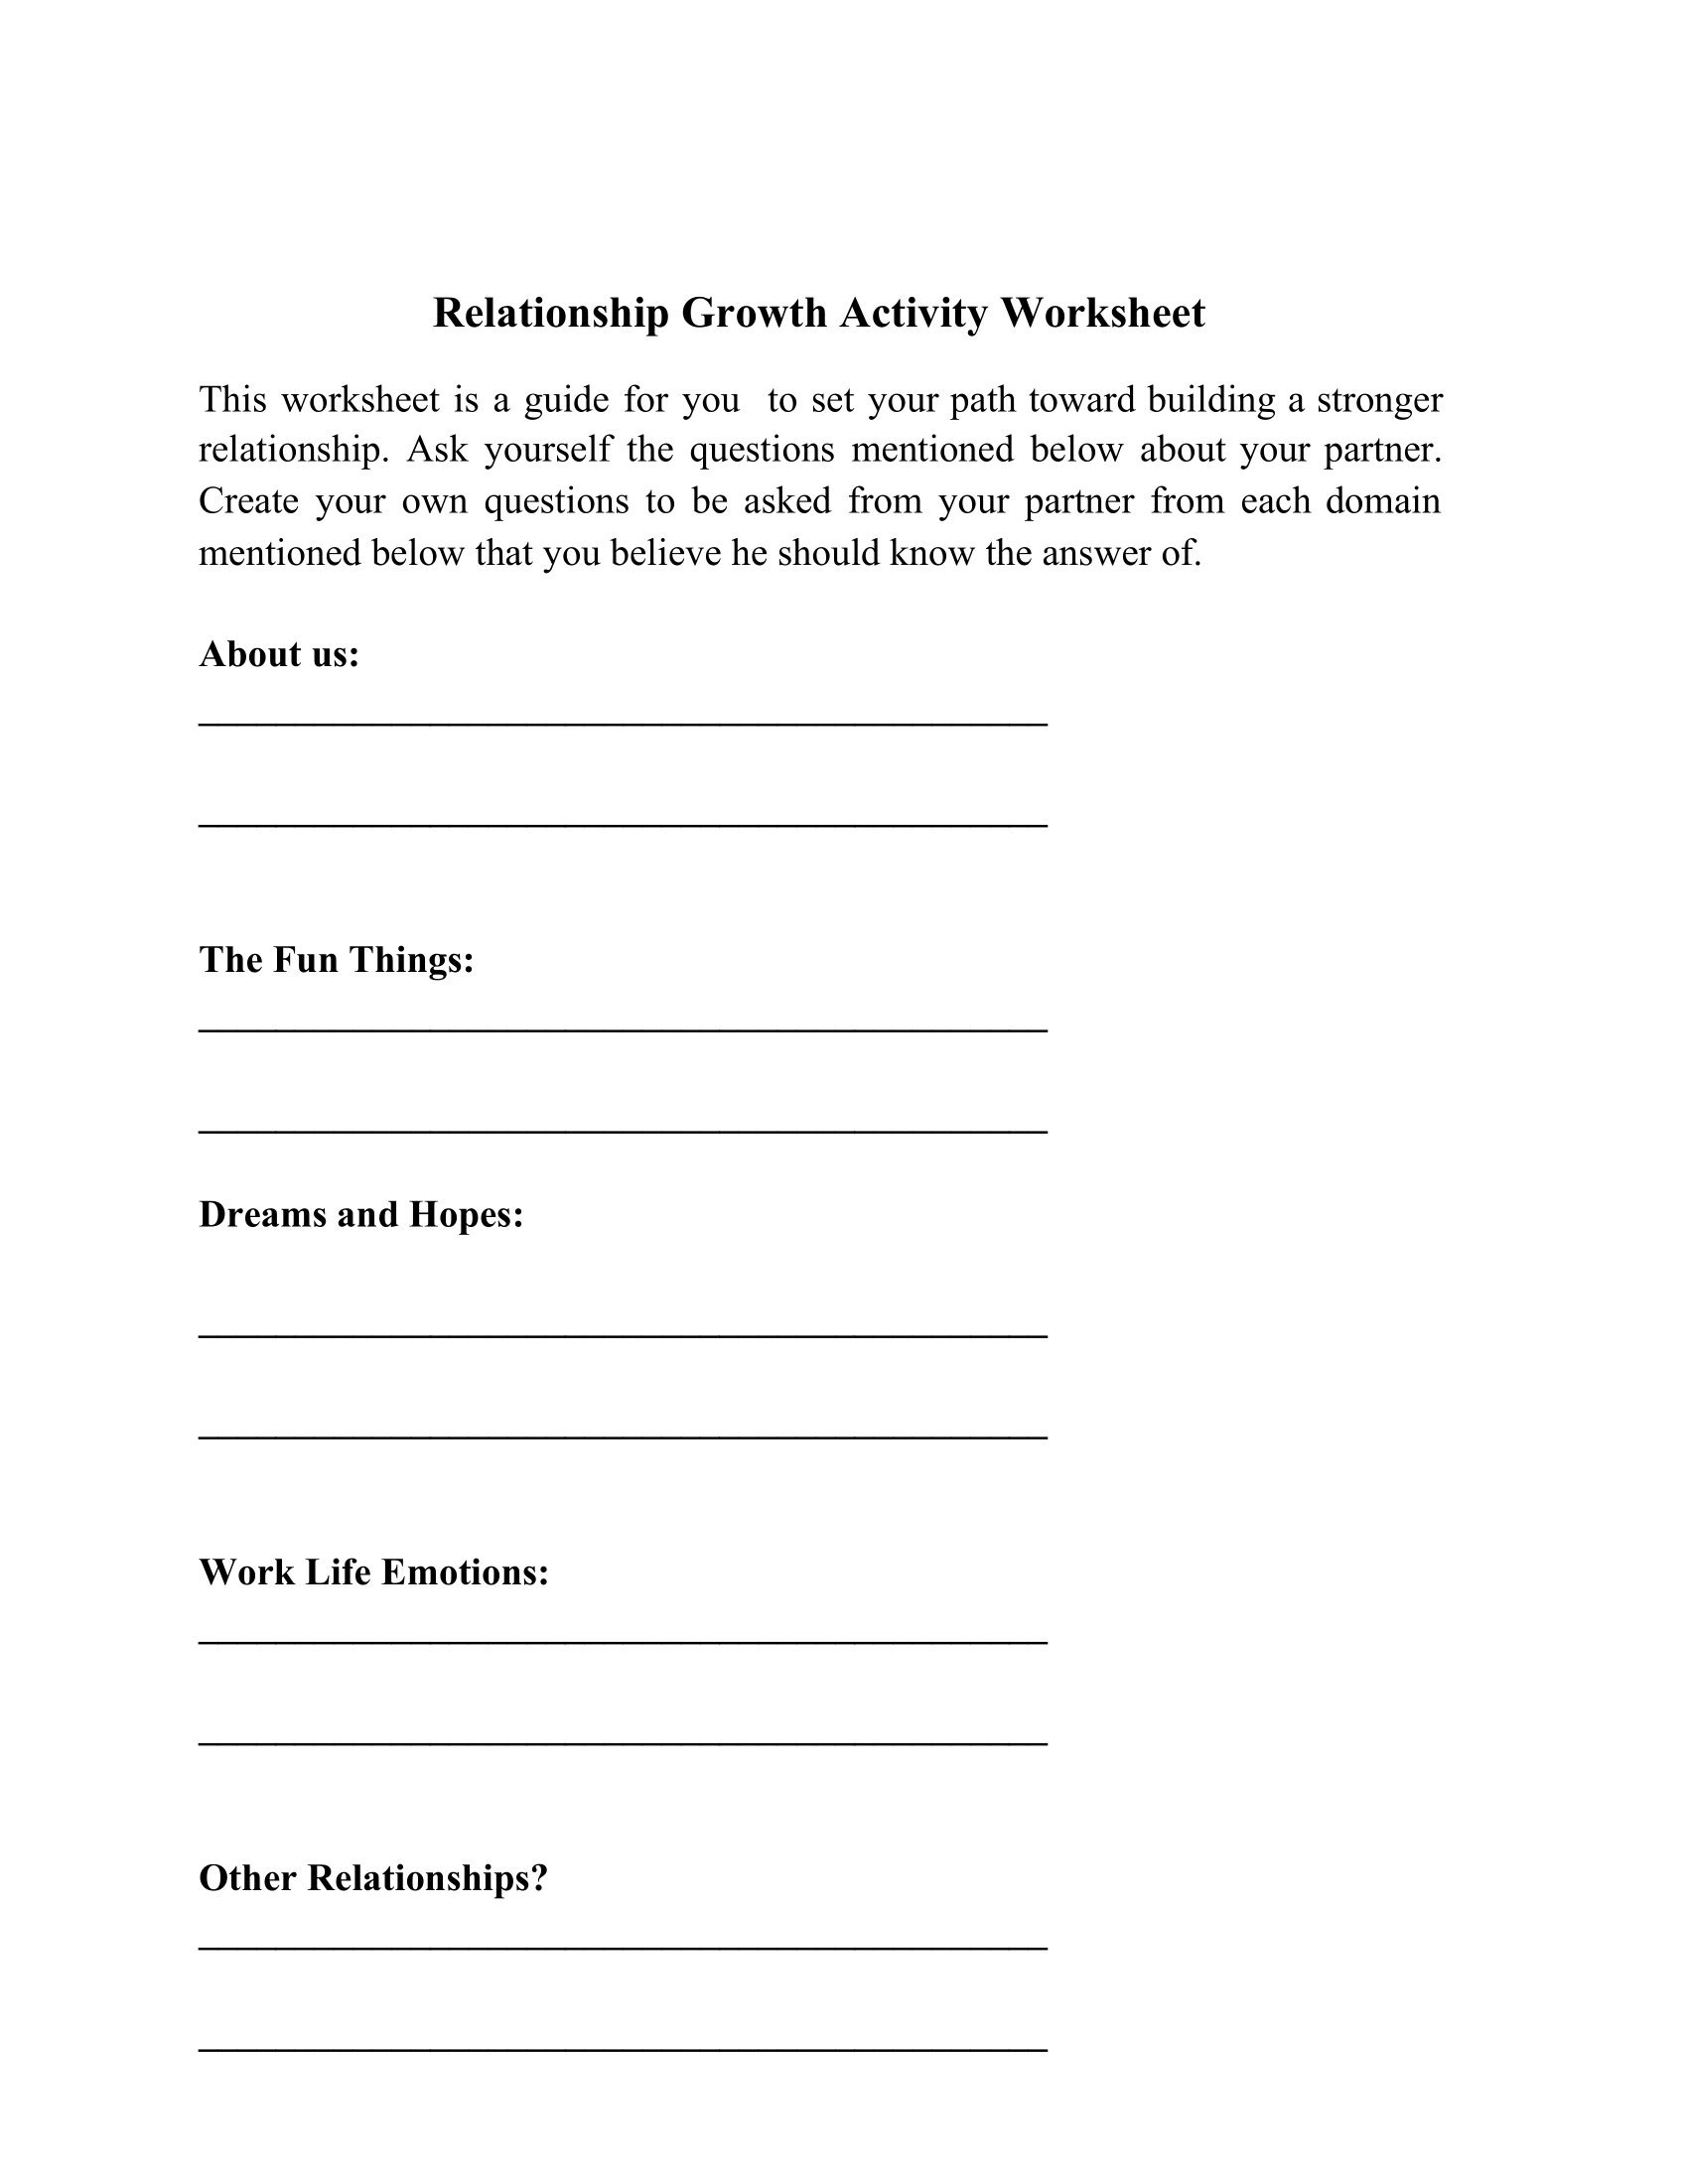 Relationship Growth Activity Worksheet